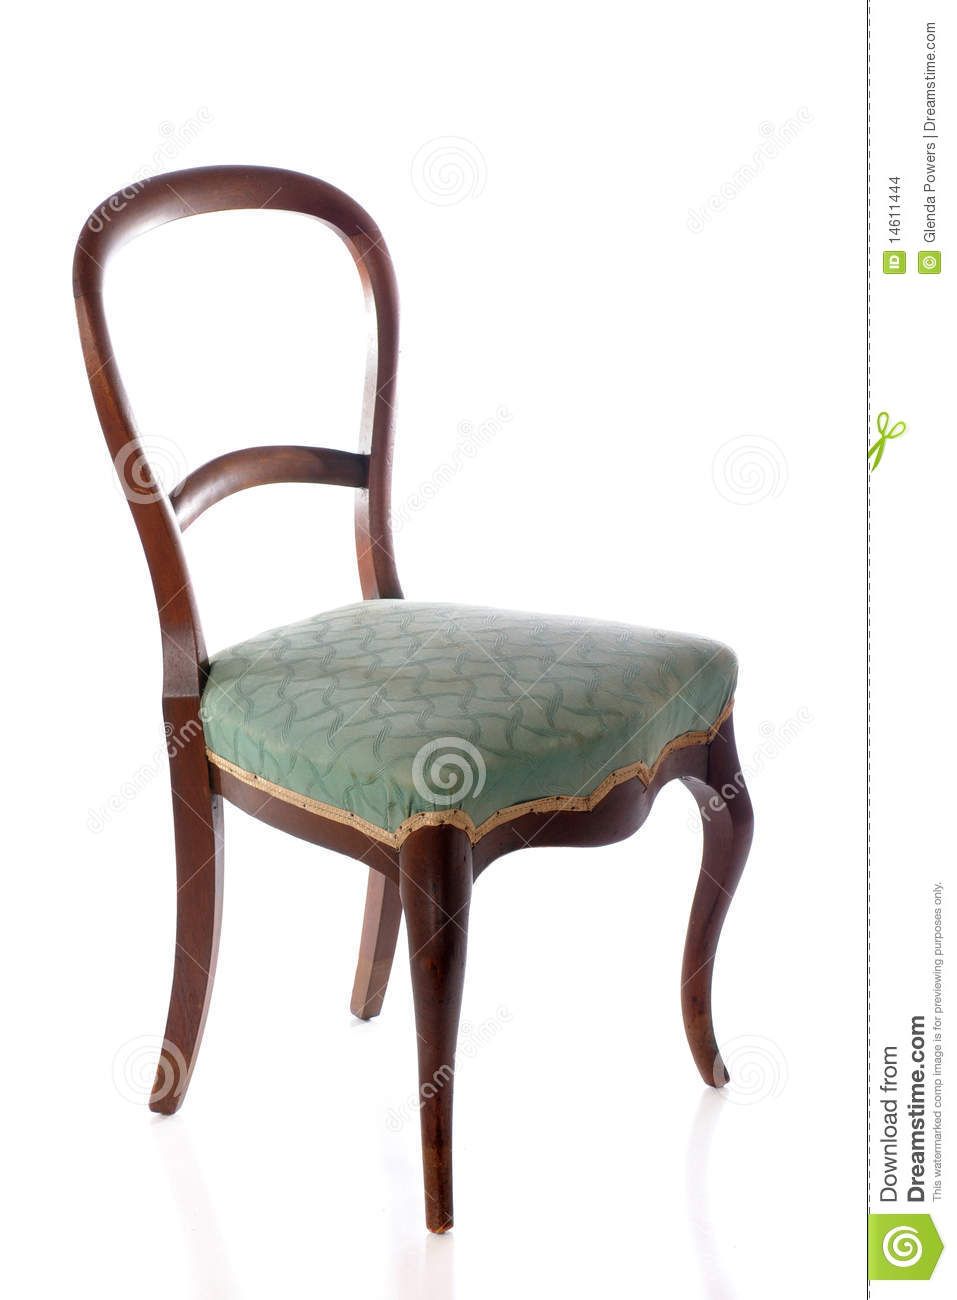 Antique Chair - Antique Chair Stock Photo. Image Of Curved, Green, Wood - 14611444